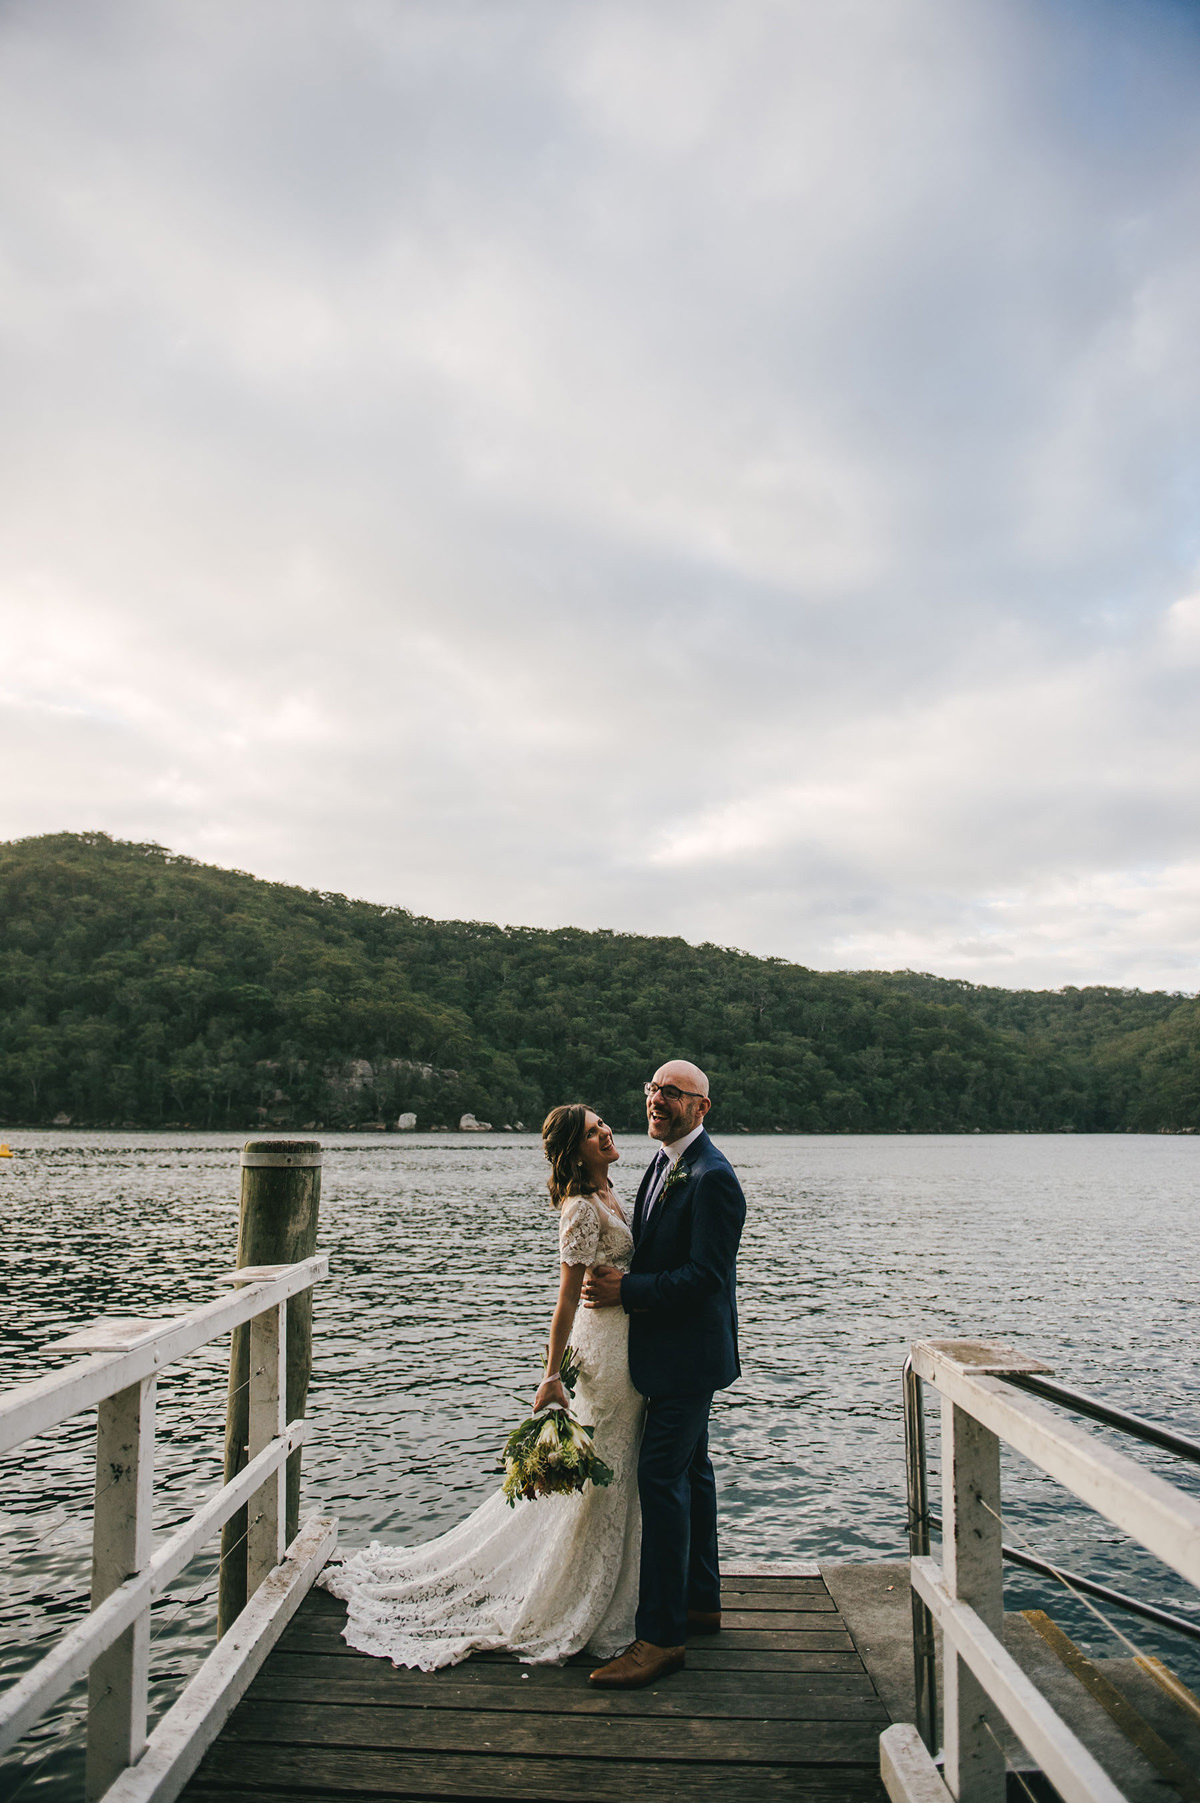 124131 low key sydney wedding at kuring gai motor yacht club by kevin lue